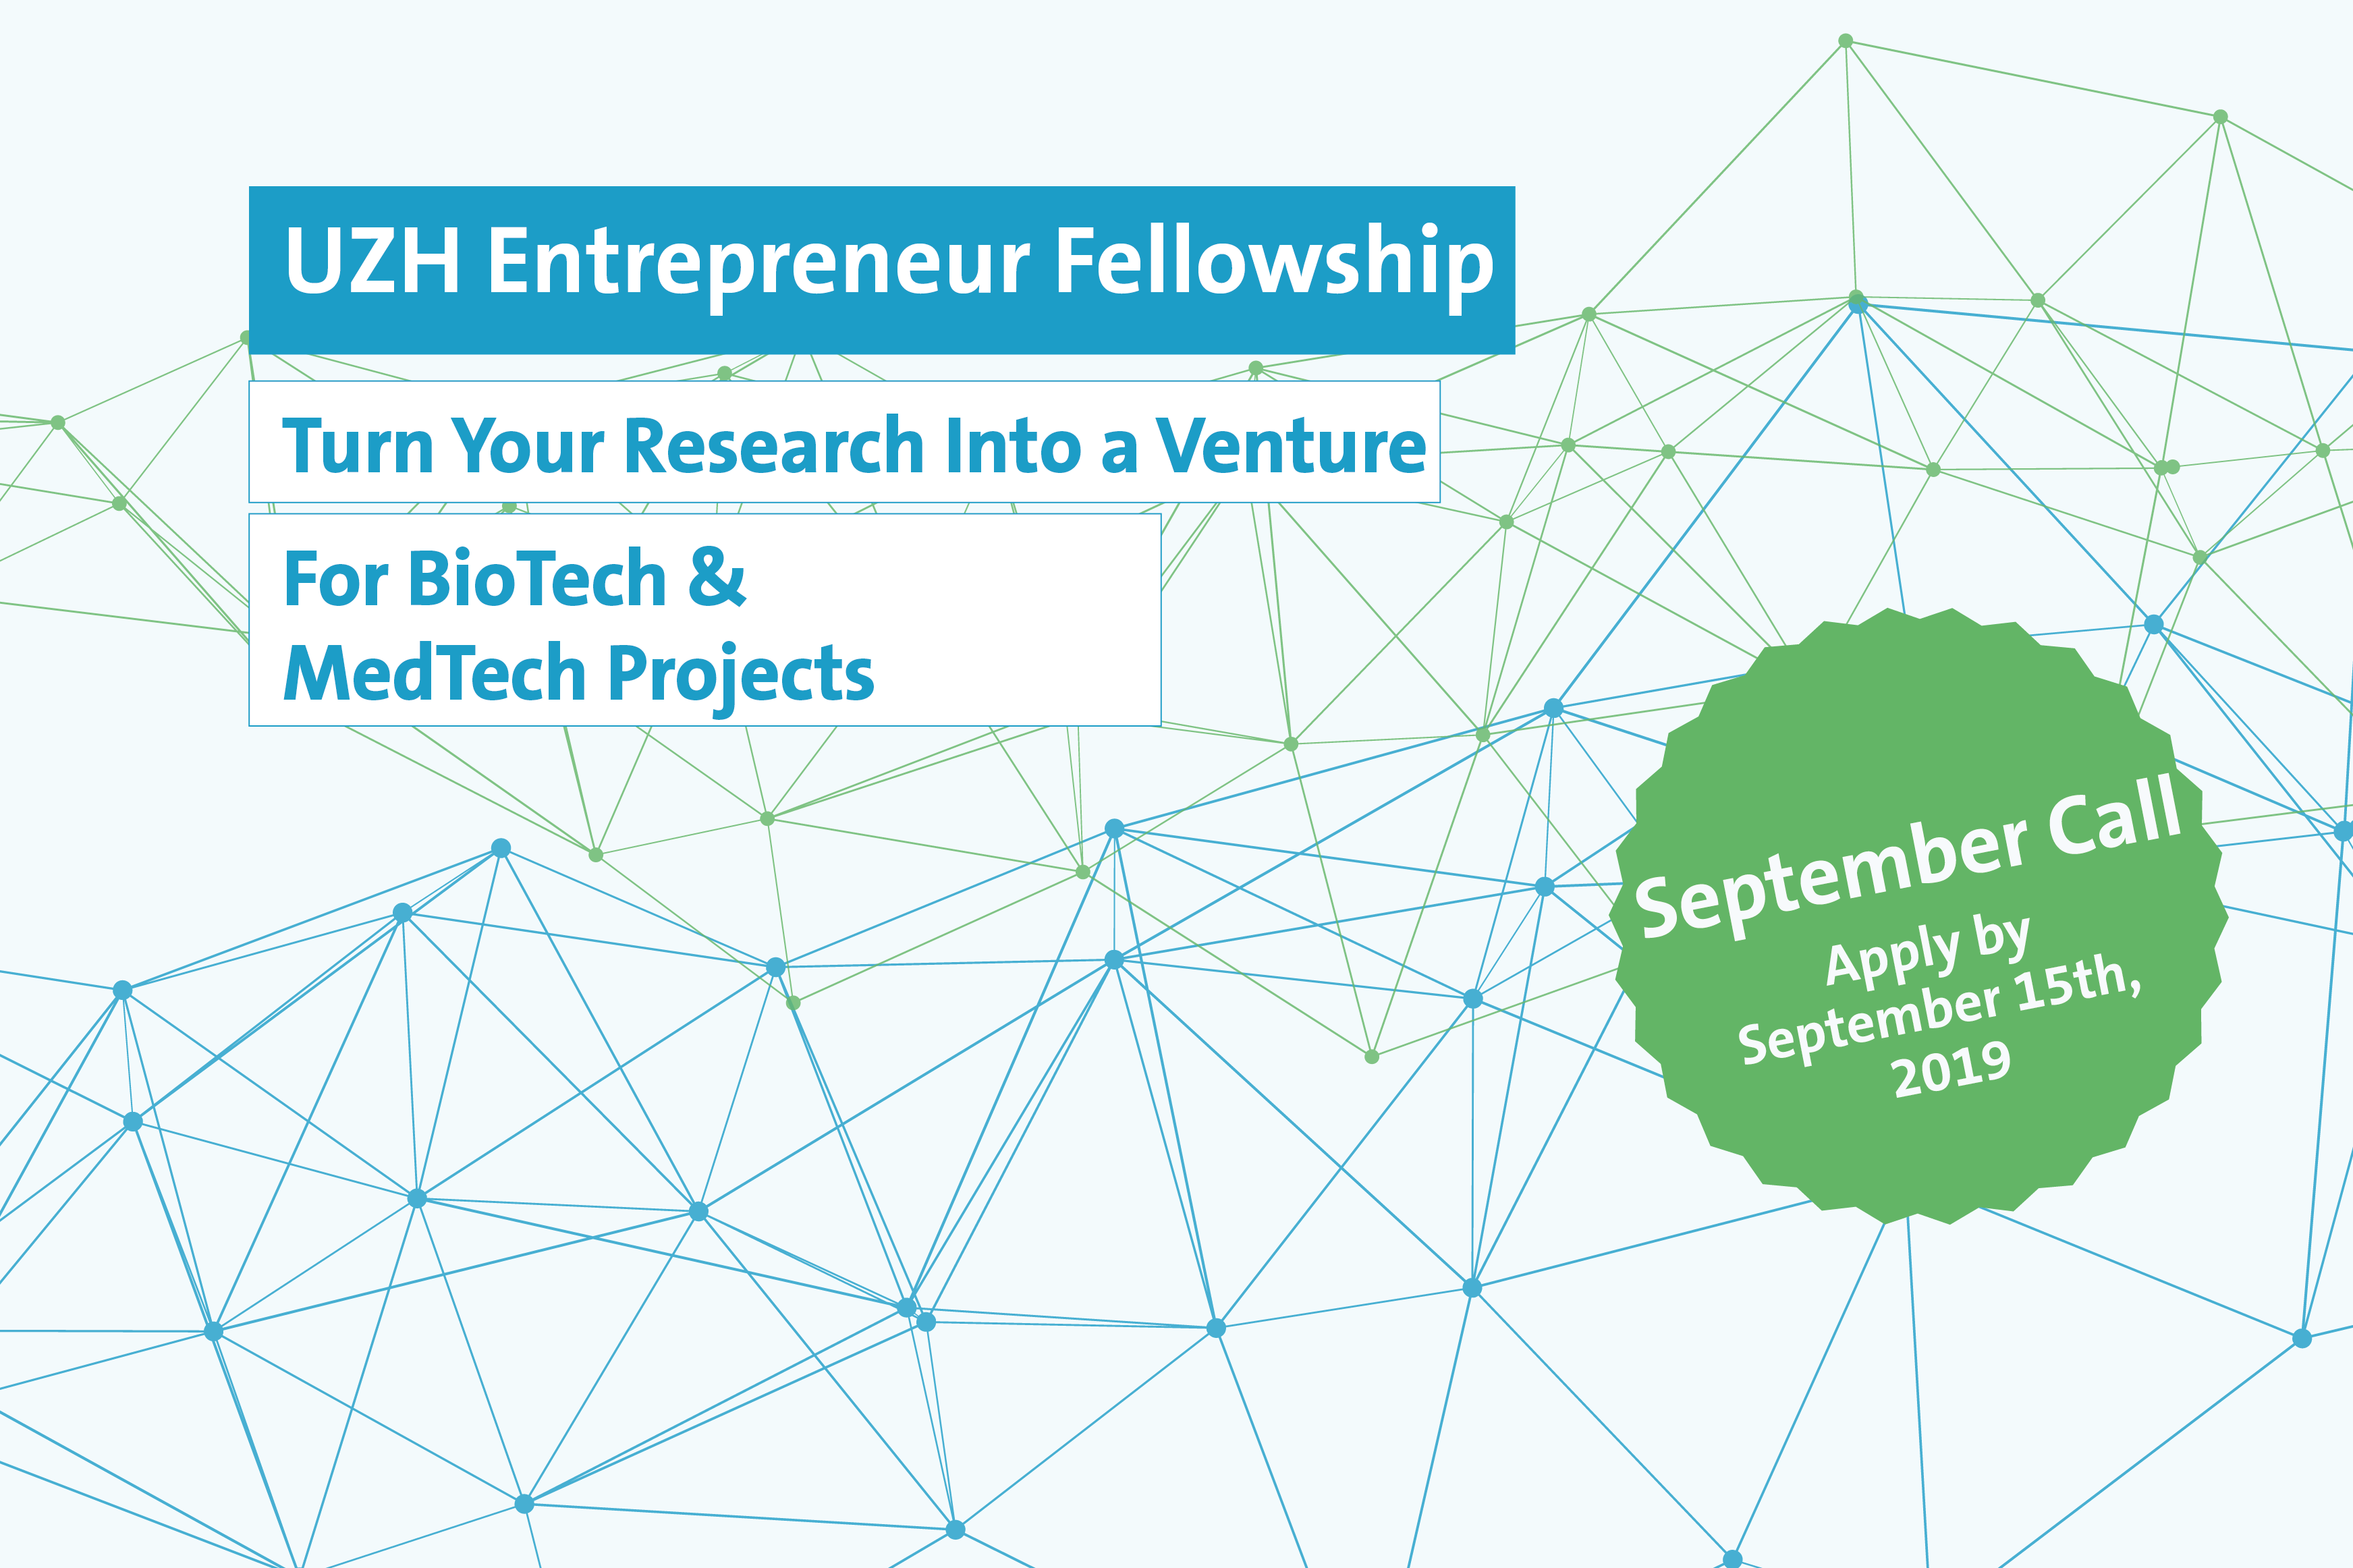 UZH Entrepreneur Fellowships in BioTech & MedTech